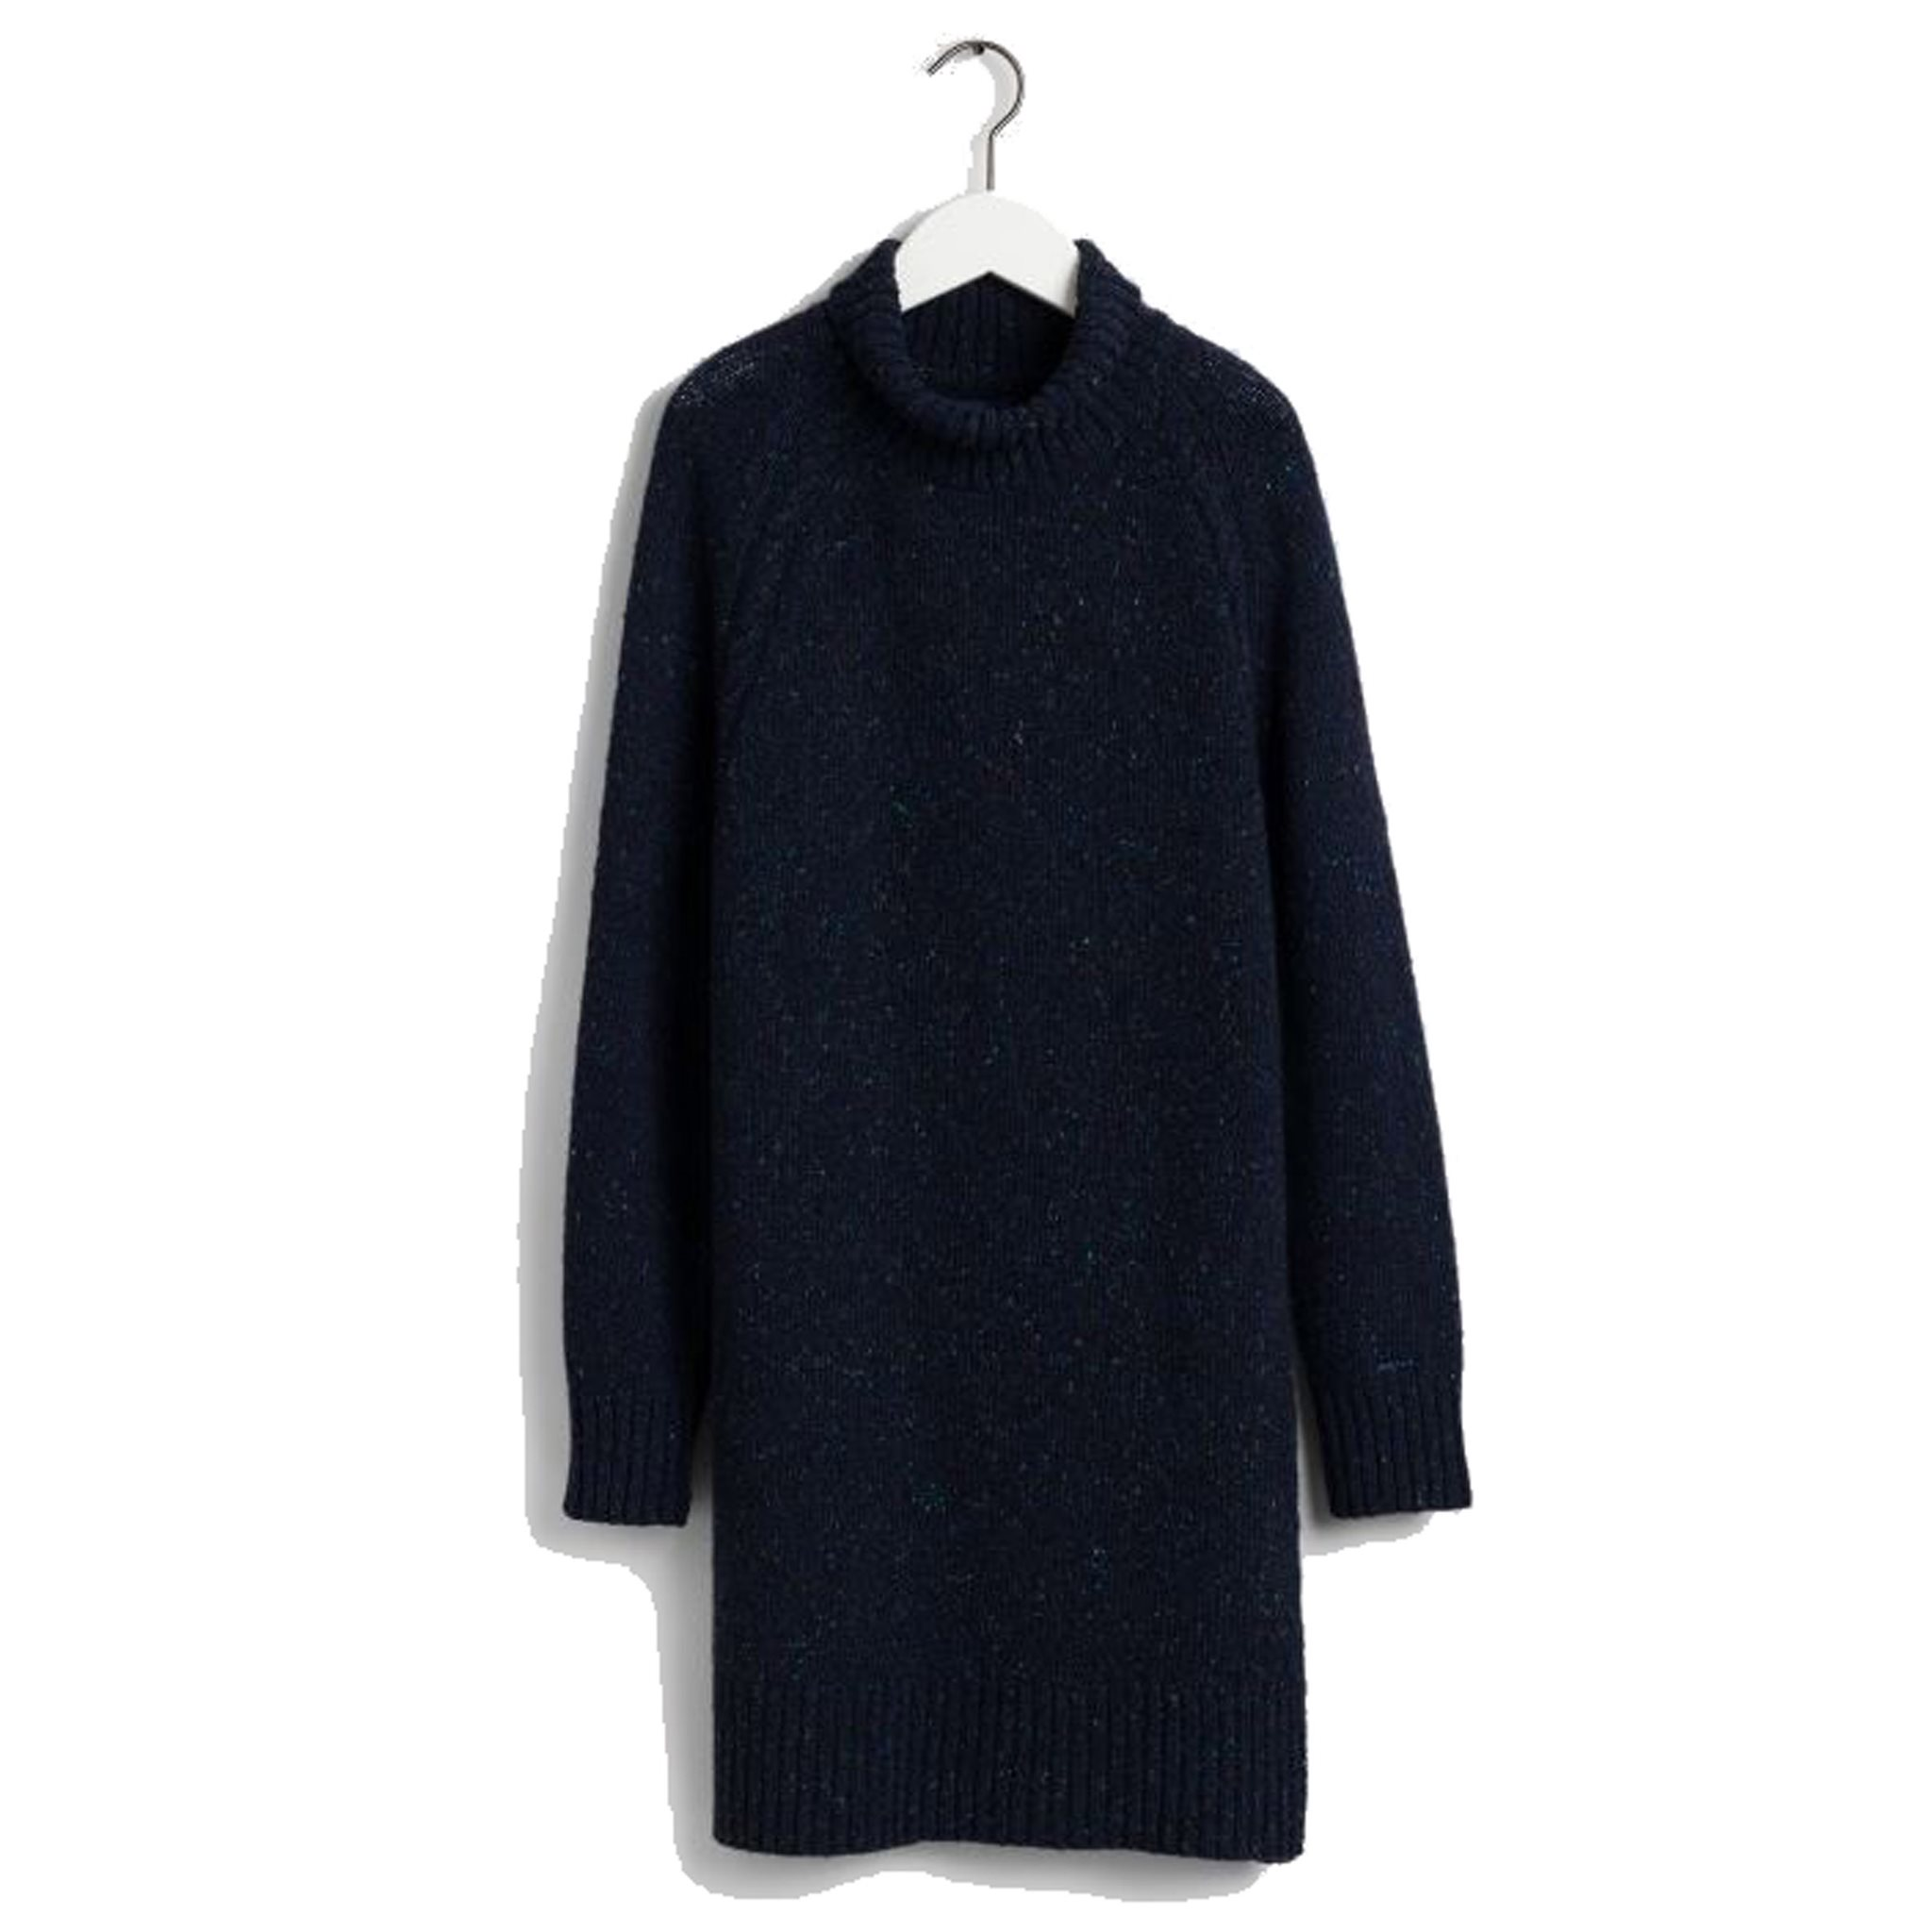 NEPS KNITTED DRESS GANT WOMAN